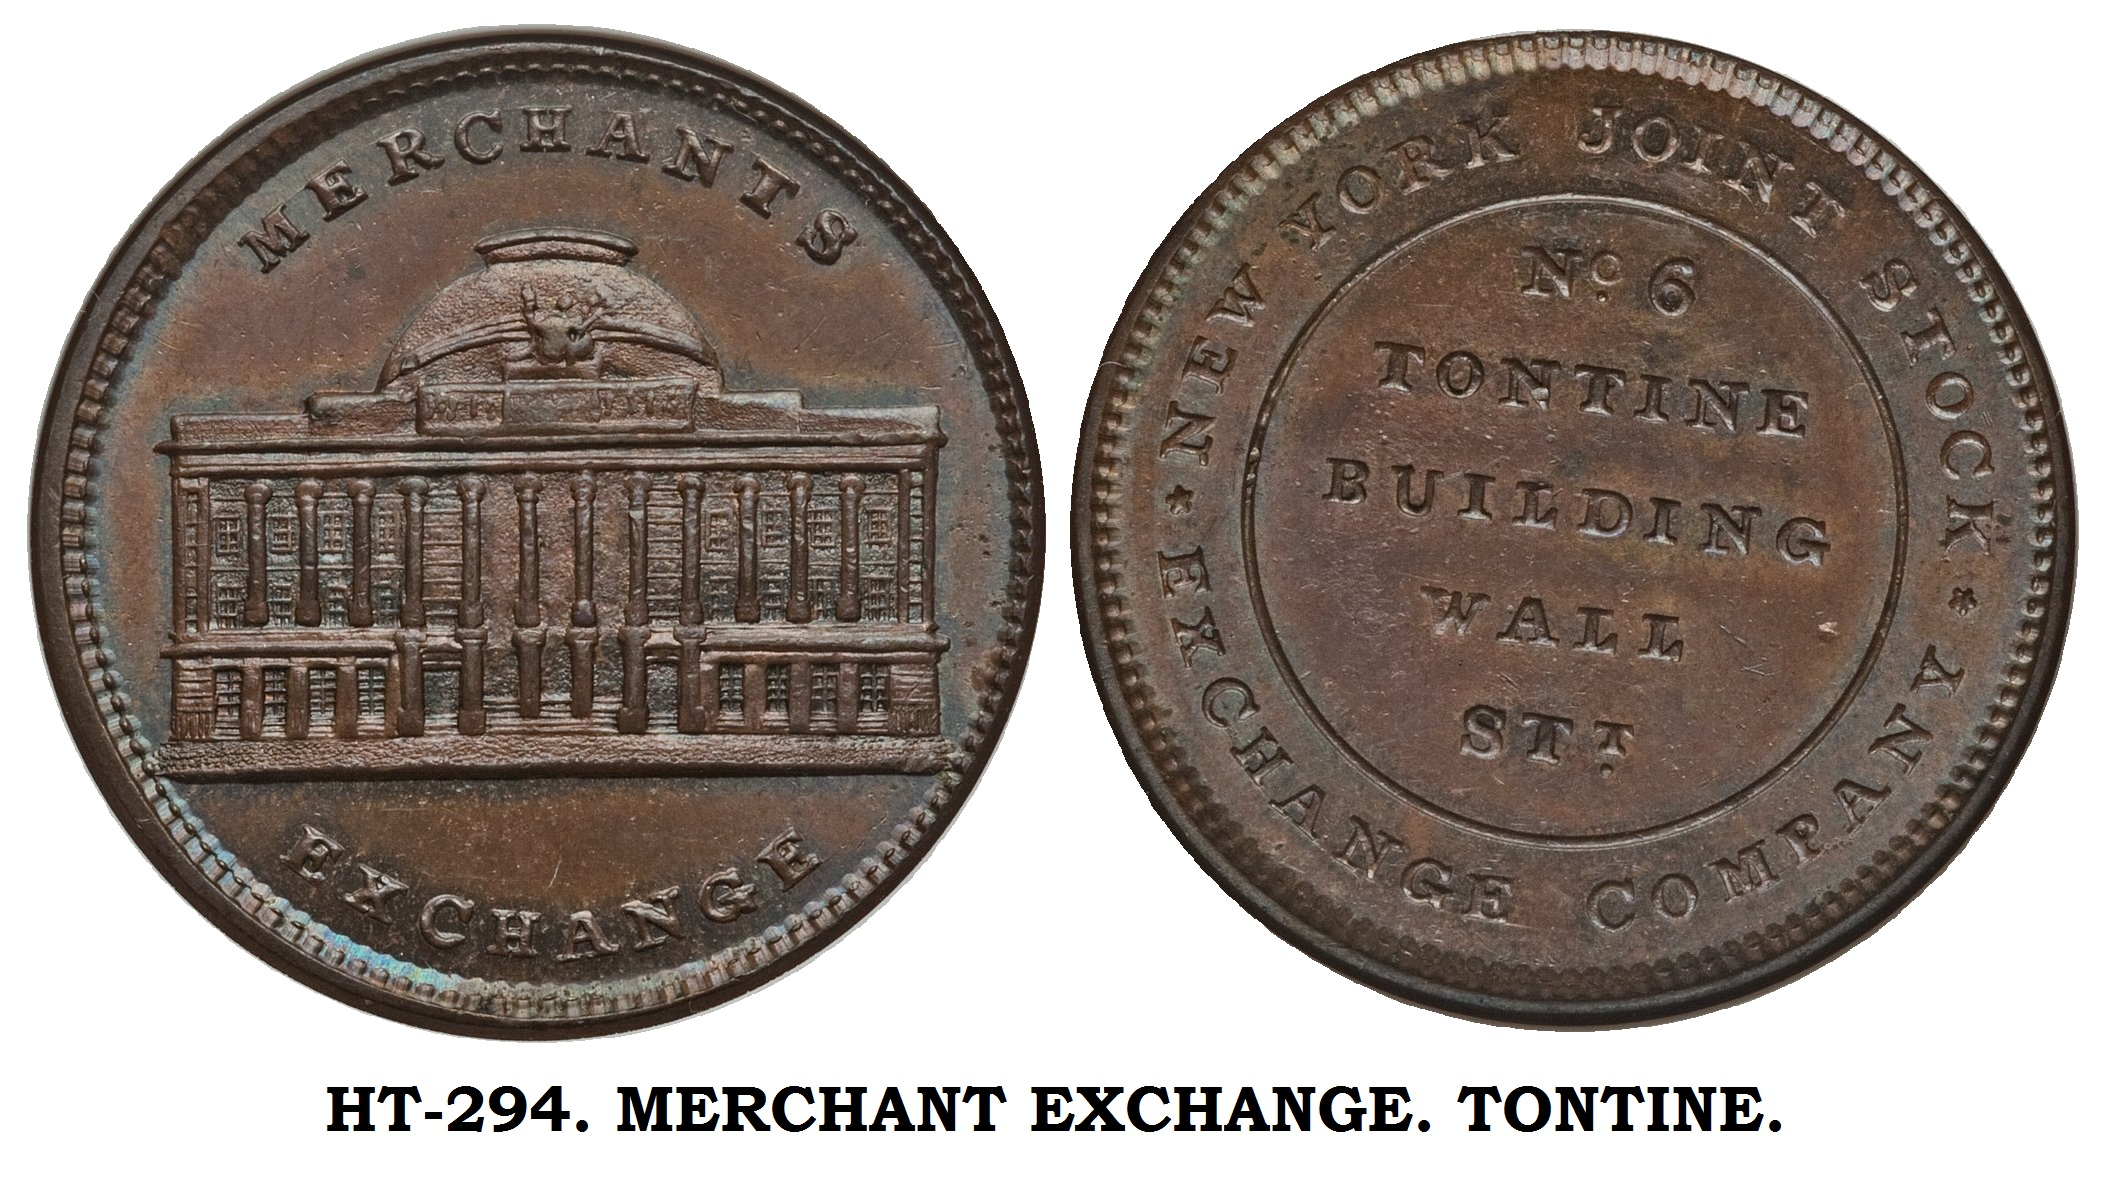 HT-294. MERCHANT EXCHANGE. TONTINE